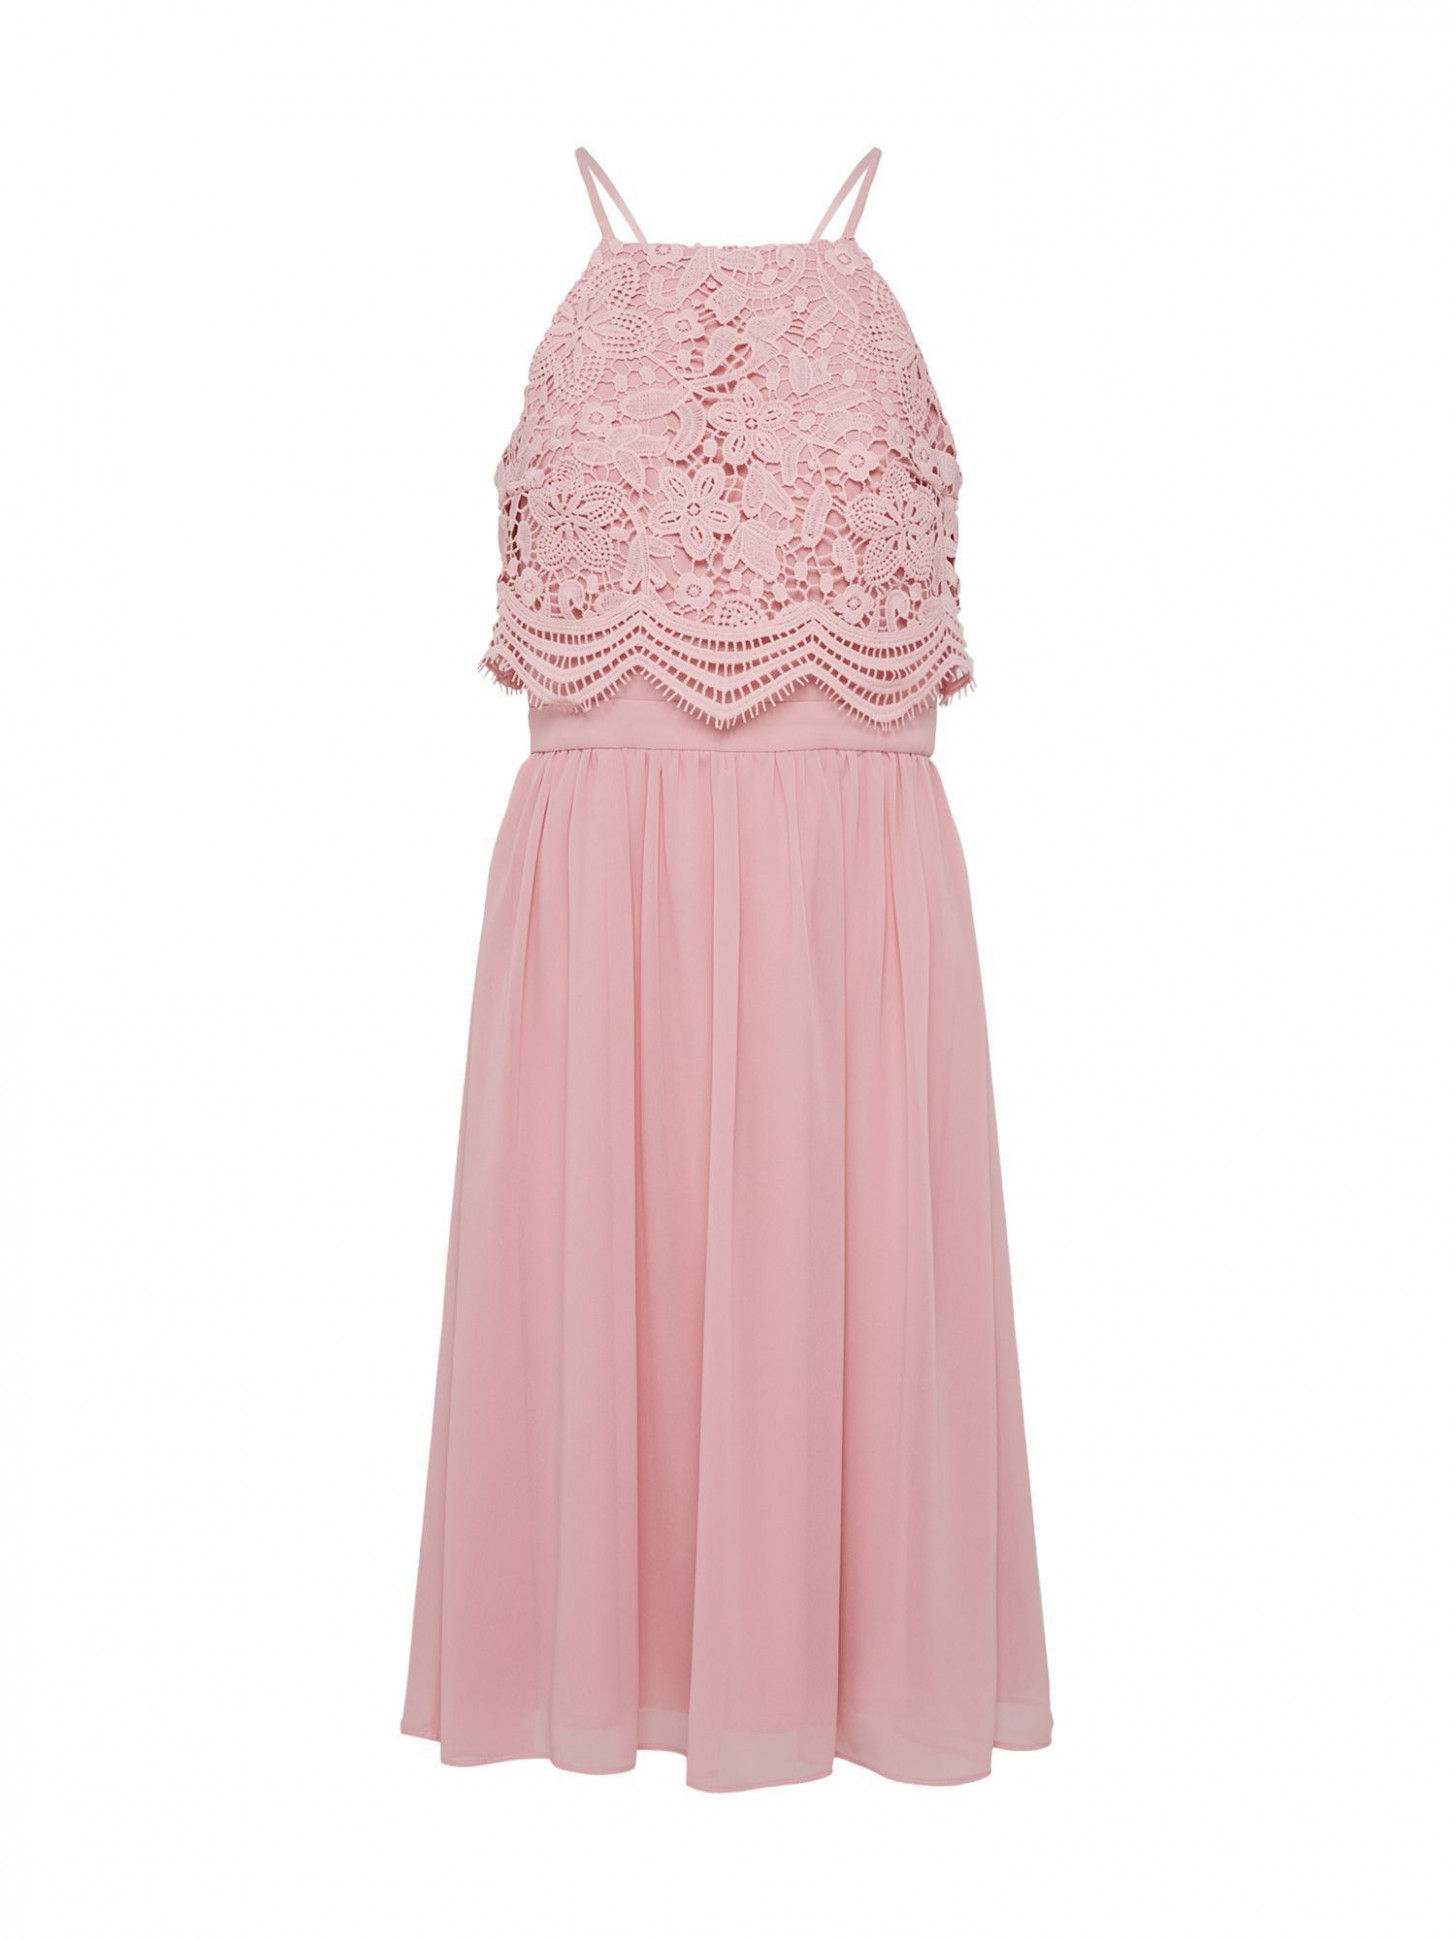 chi chi london cocktailkleid rosa pink cocktailkleid, chi chi